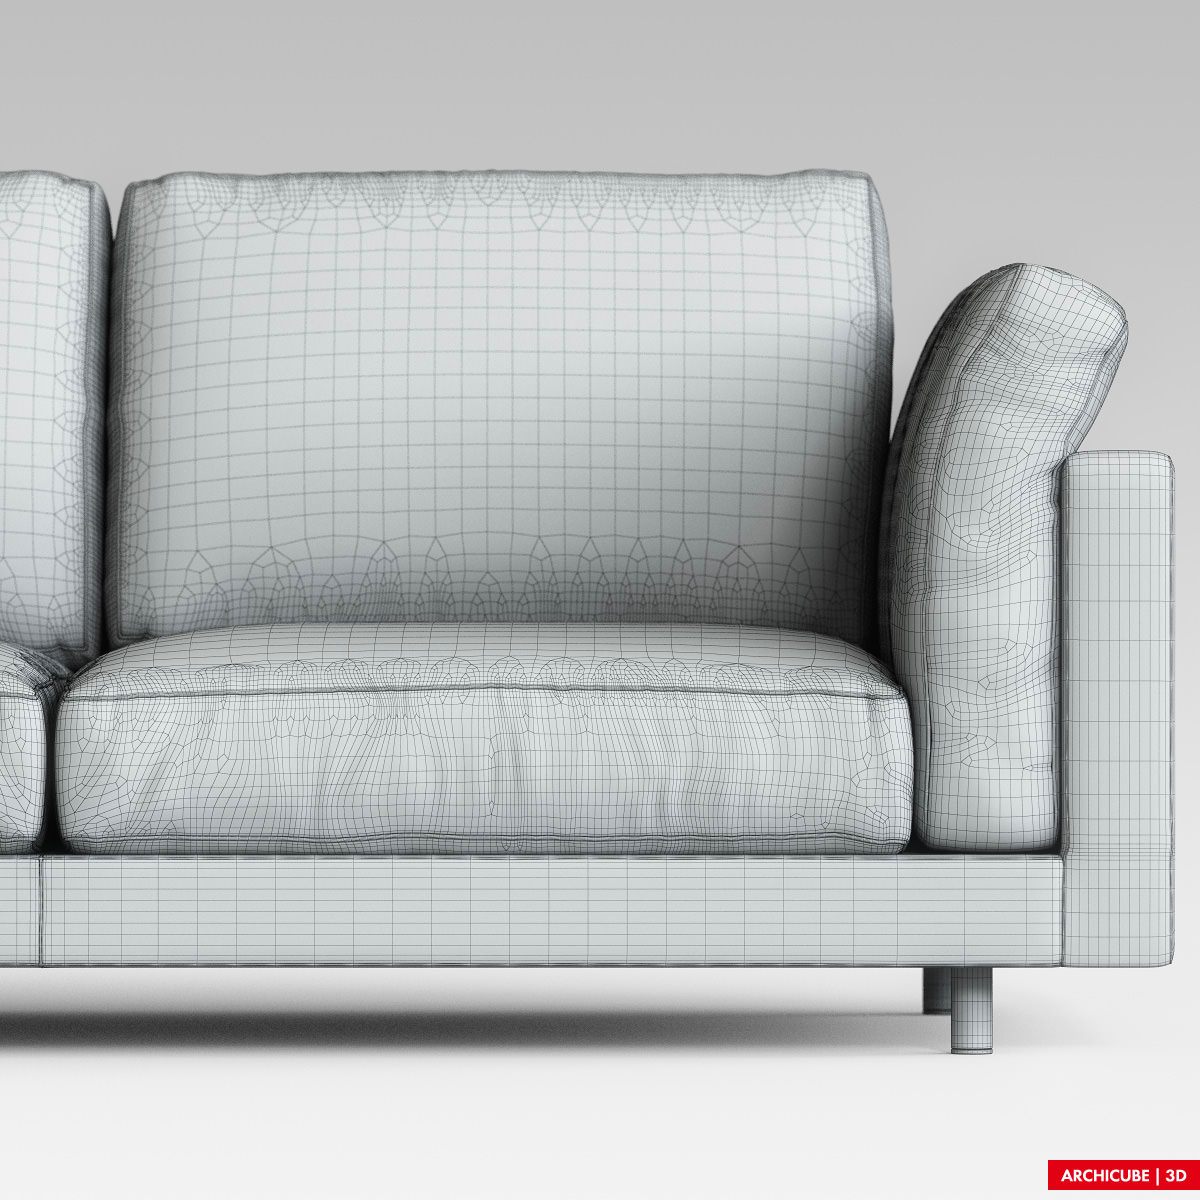 Modern sofa 3d model max obj fbx for Sofa 3d model